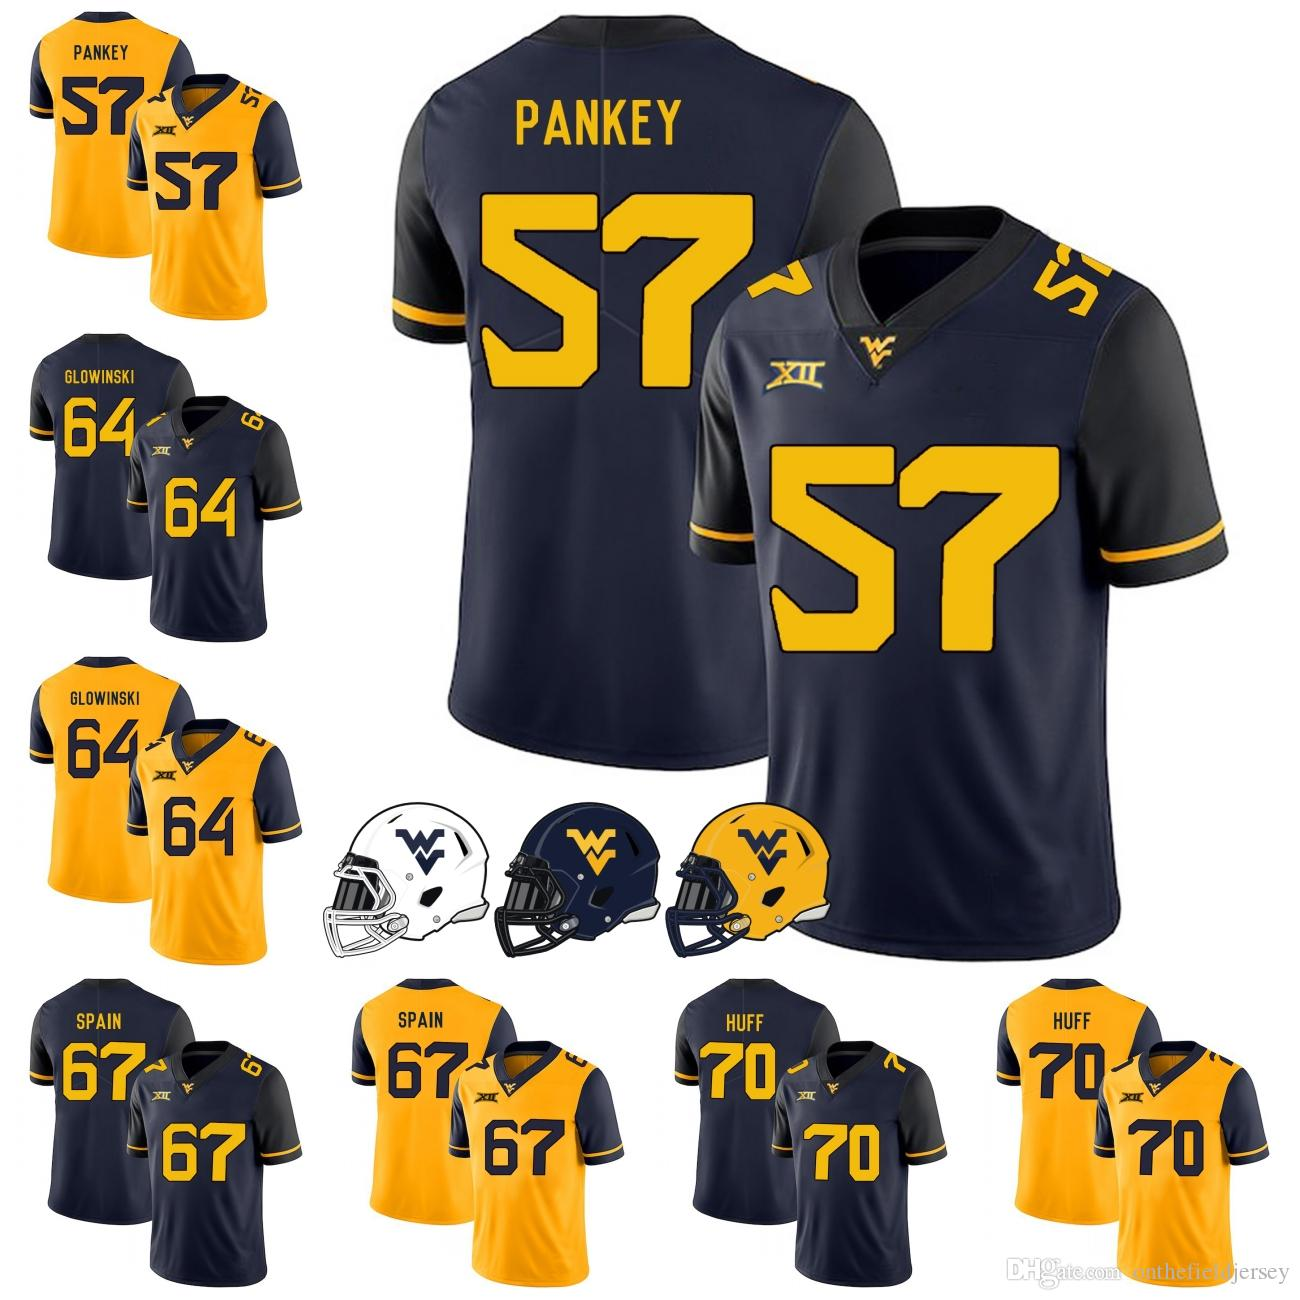 watch 889e3 8d3b5 West Virginia Mountaineers 2018 NEW STYLE #57 Adam Pankey 64 Mark Glowinski  67 Quinton Spain 70 Sam Huff College Football Jerseys S-3XL